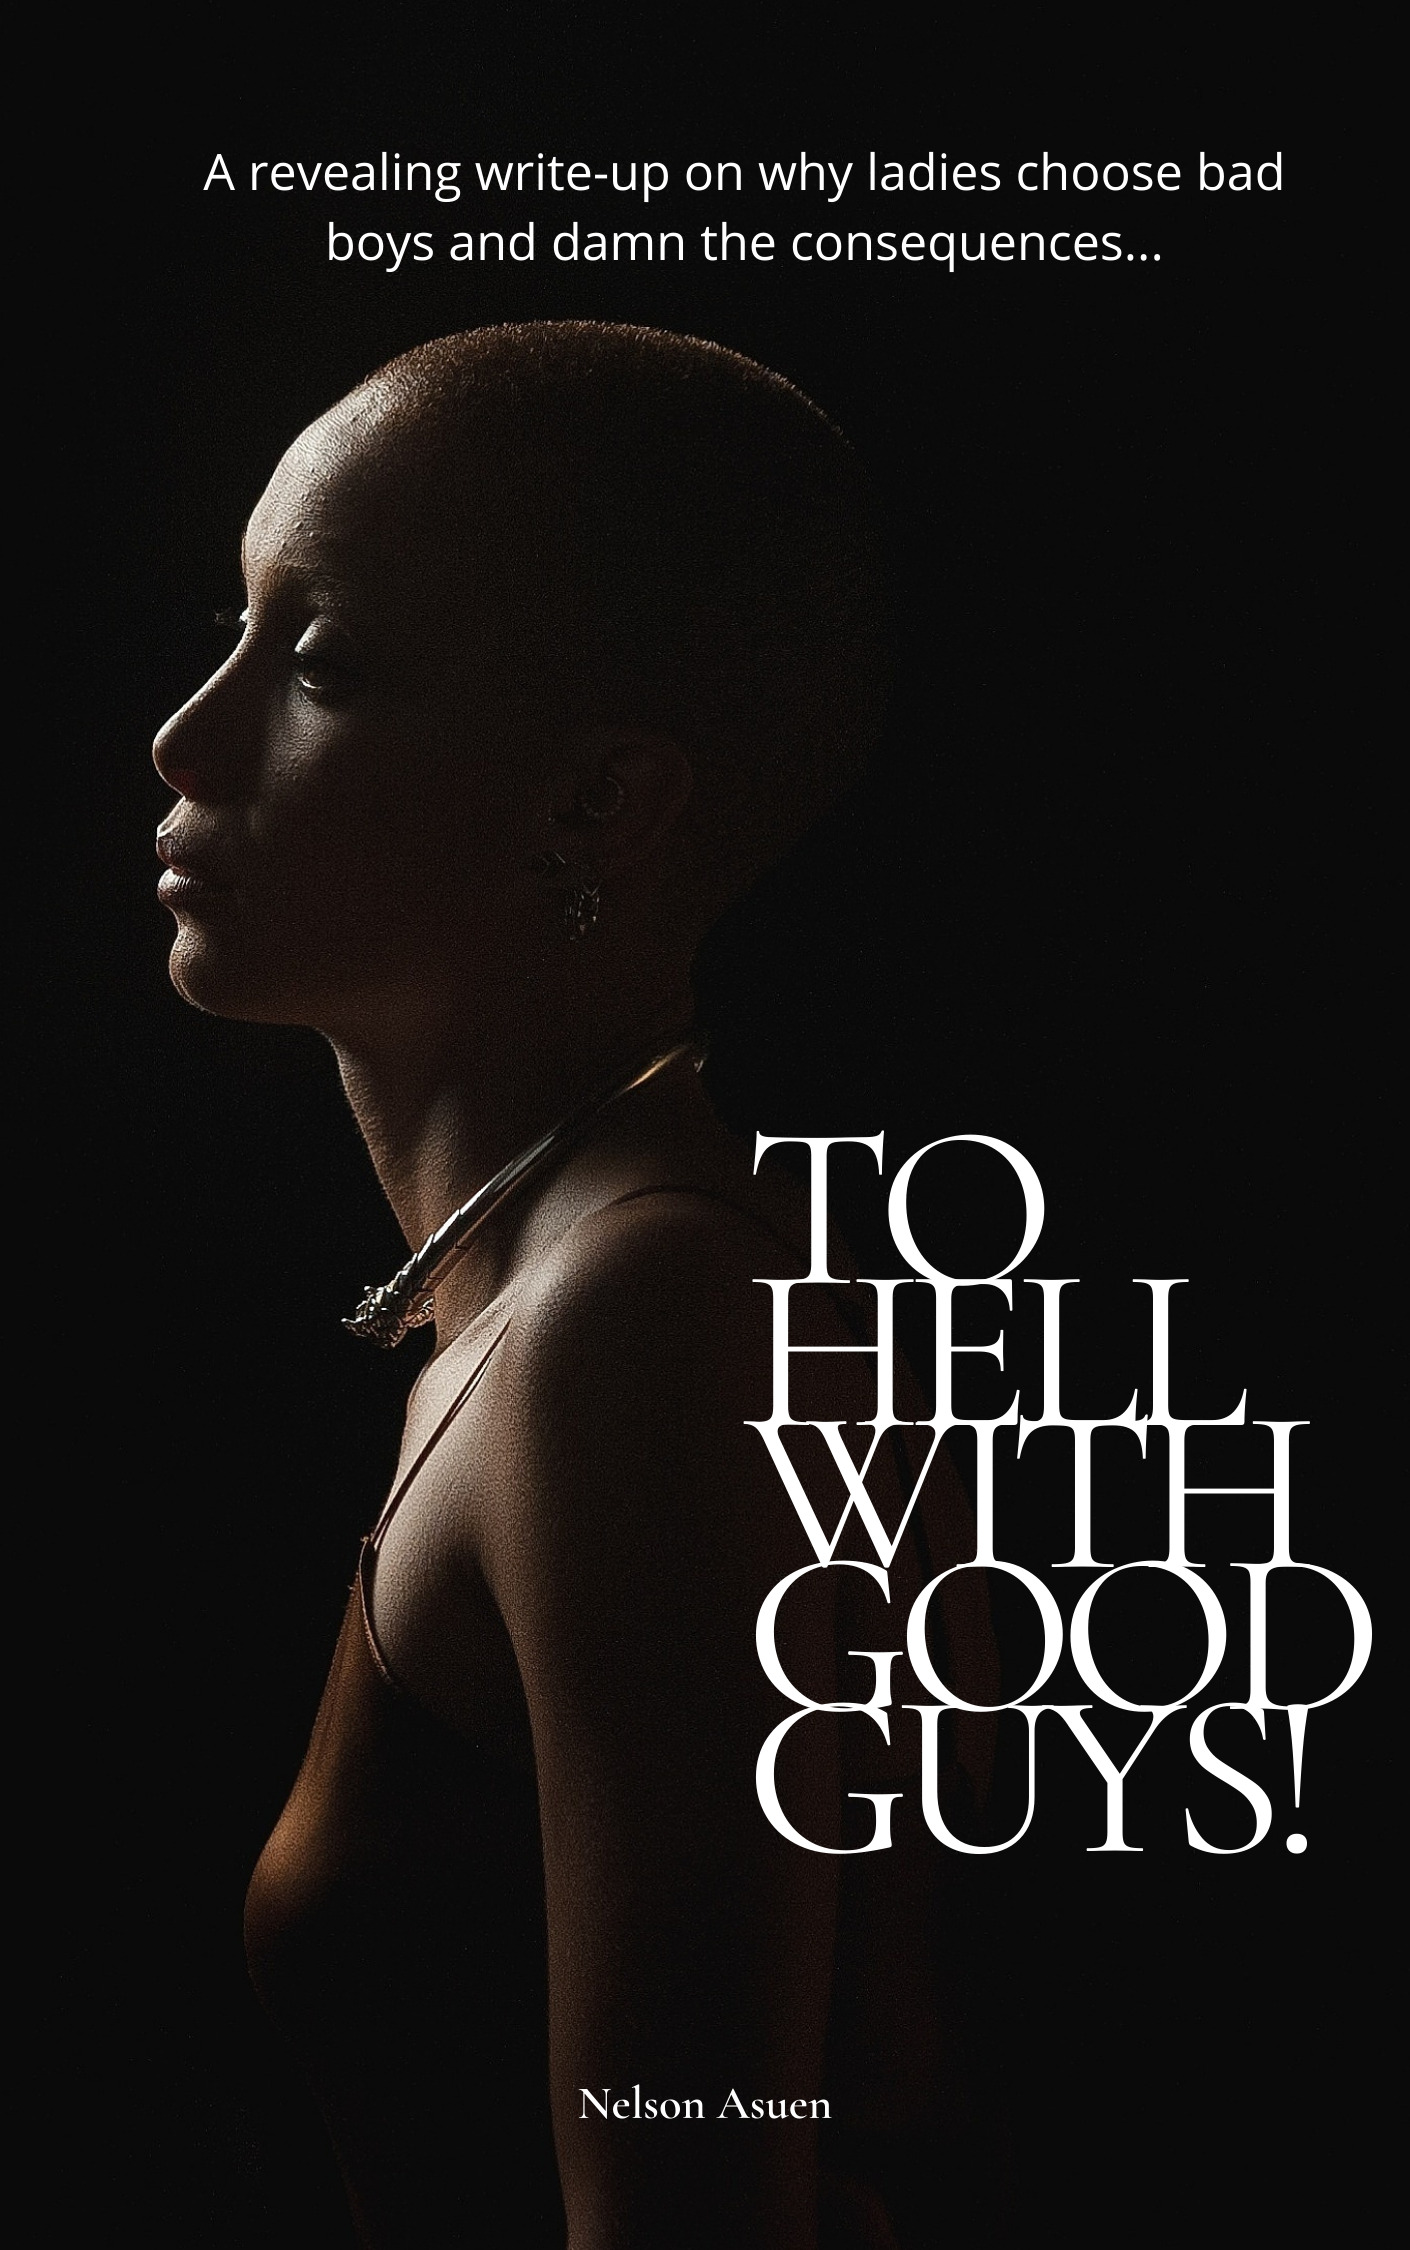 TO HELL WITH GOOD GUYS!